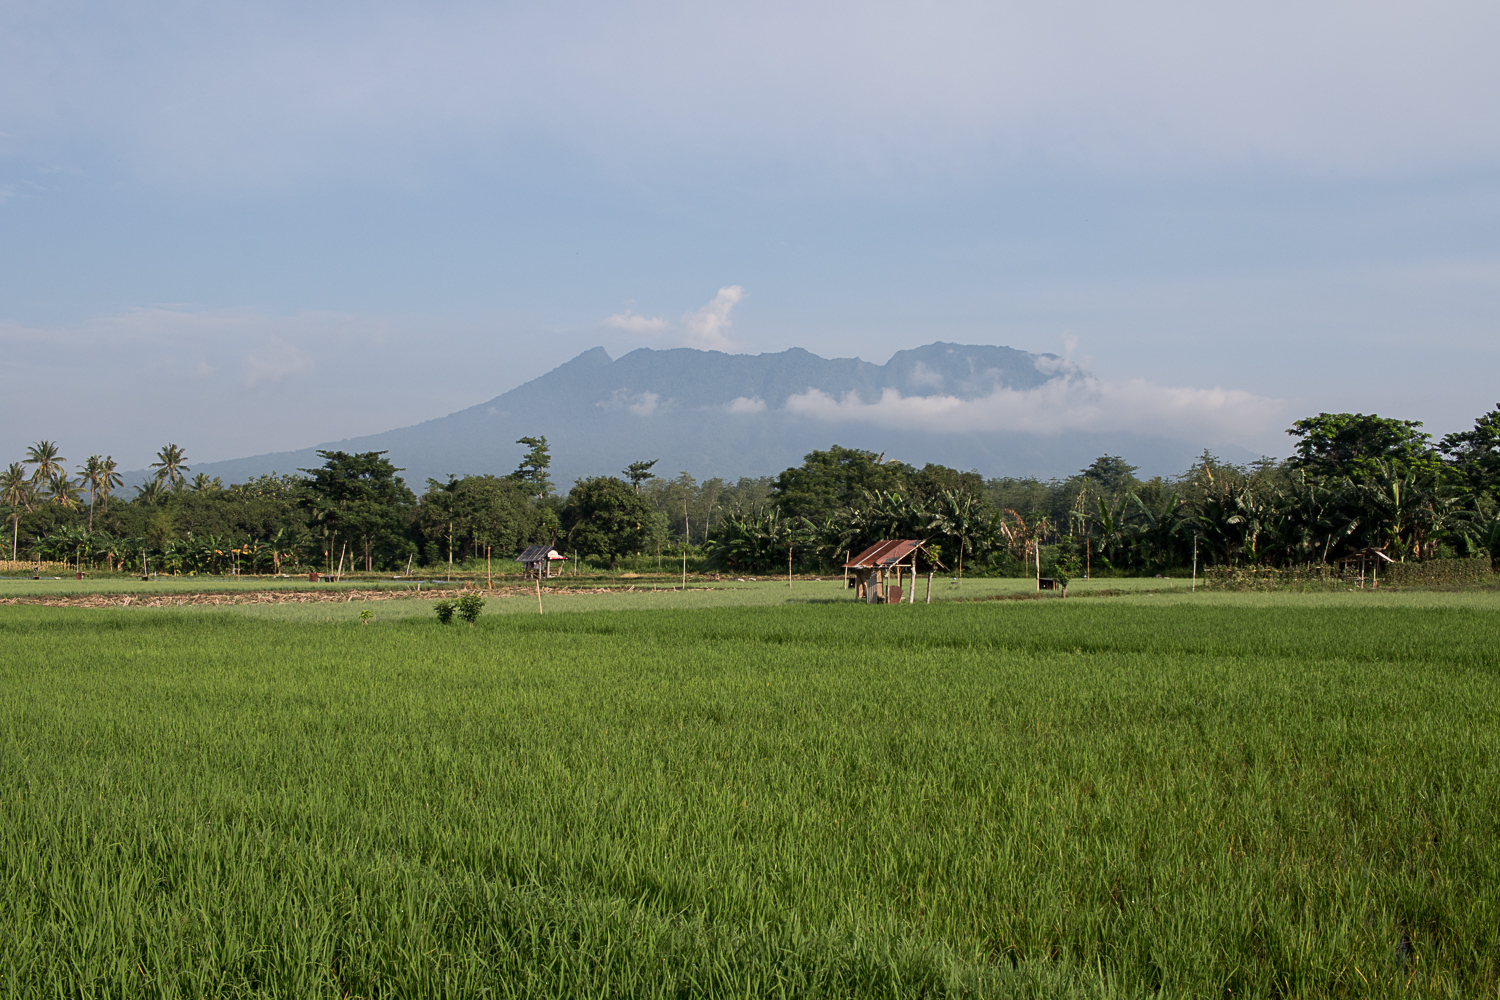 The edge of Baluran National Park, East Java.